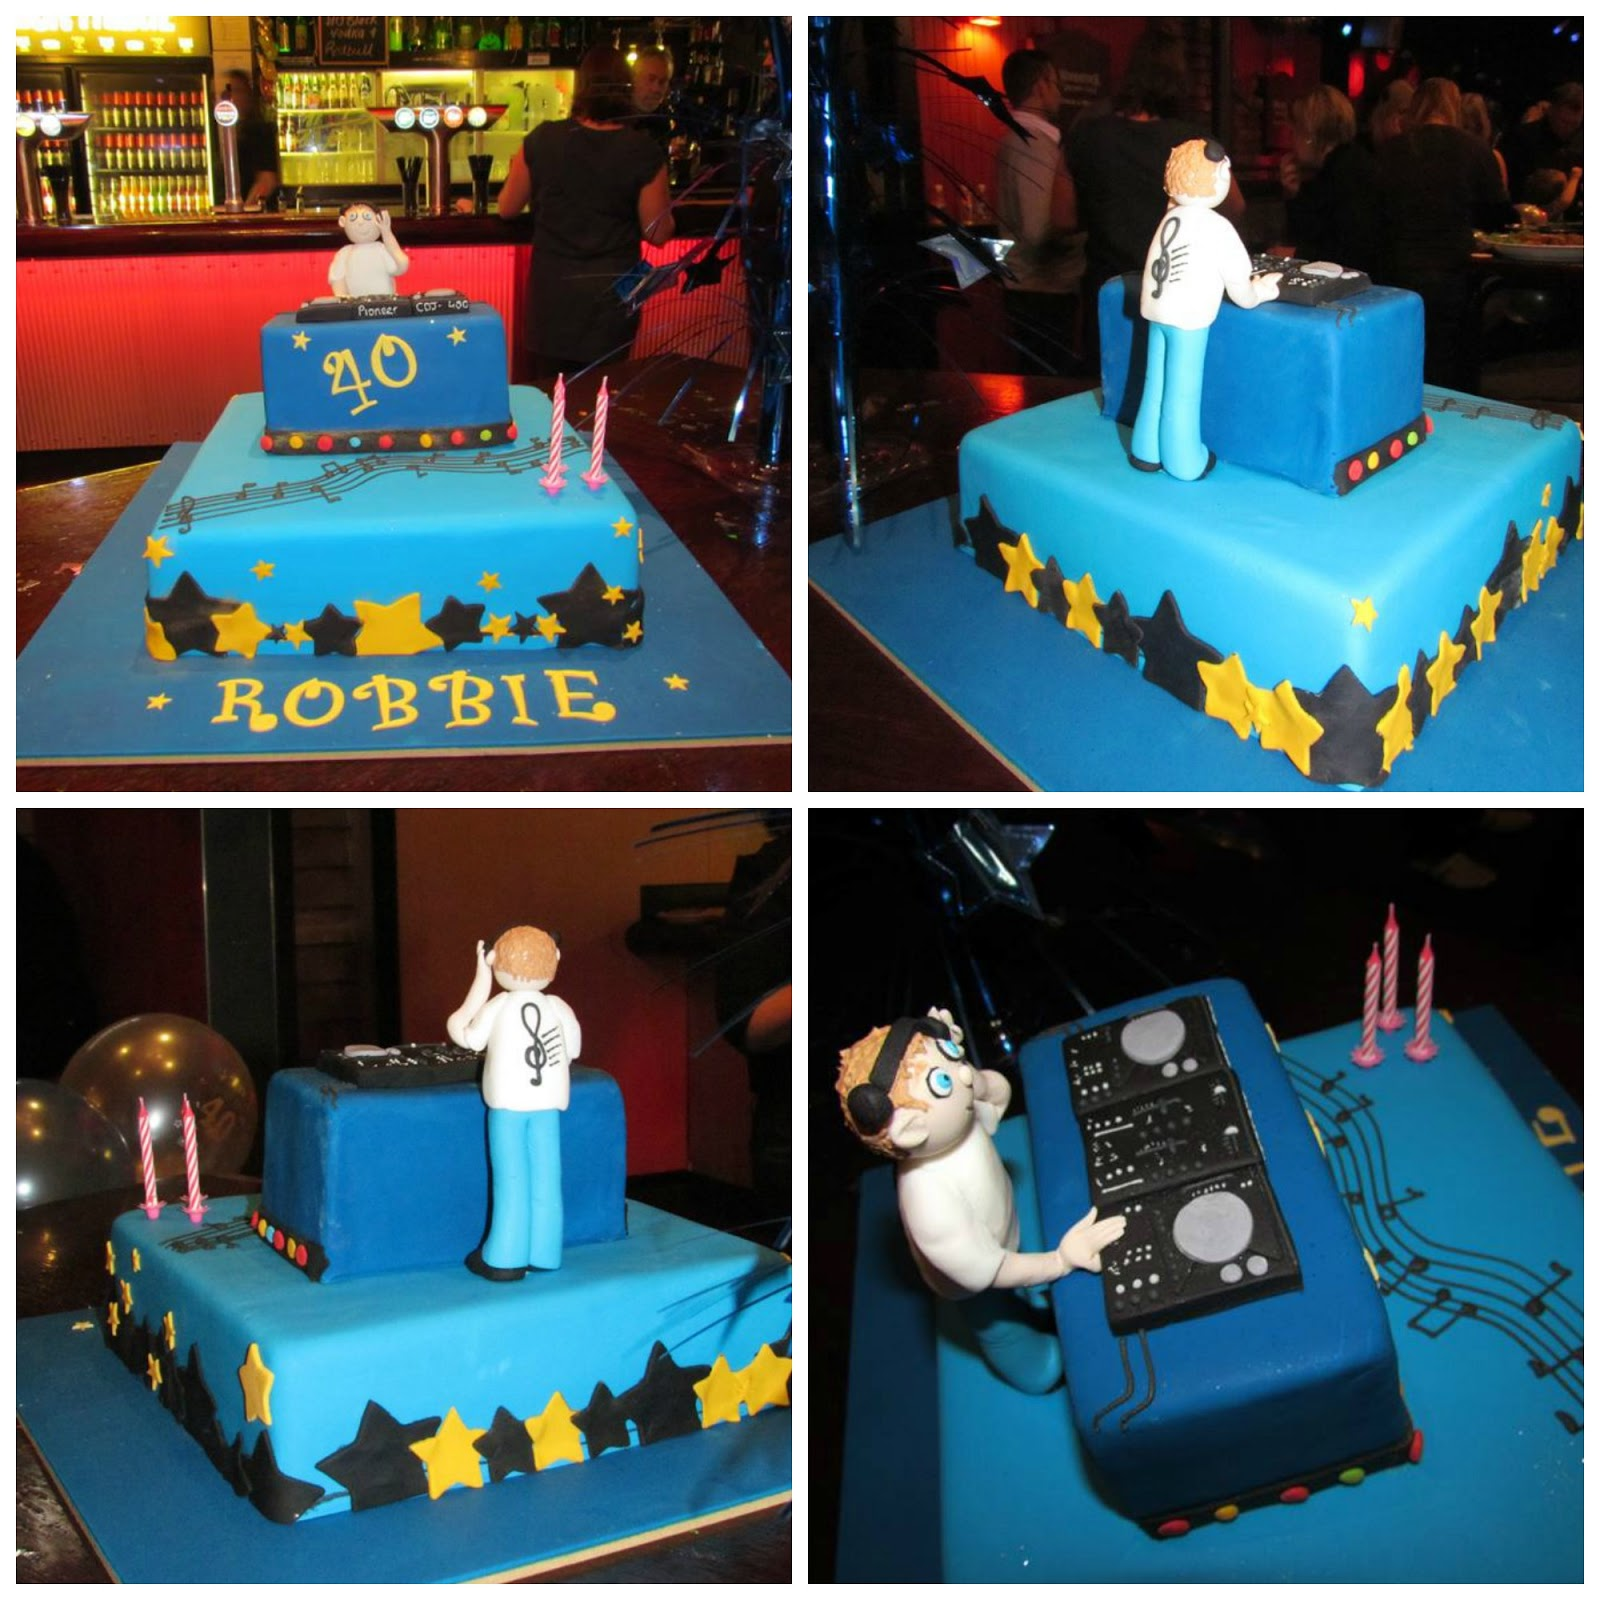 Penny's Parties: Robbie's 40th